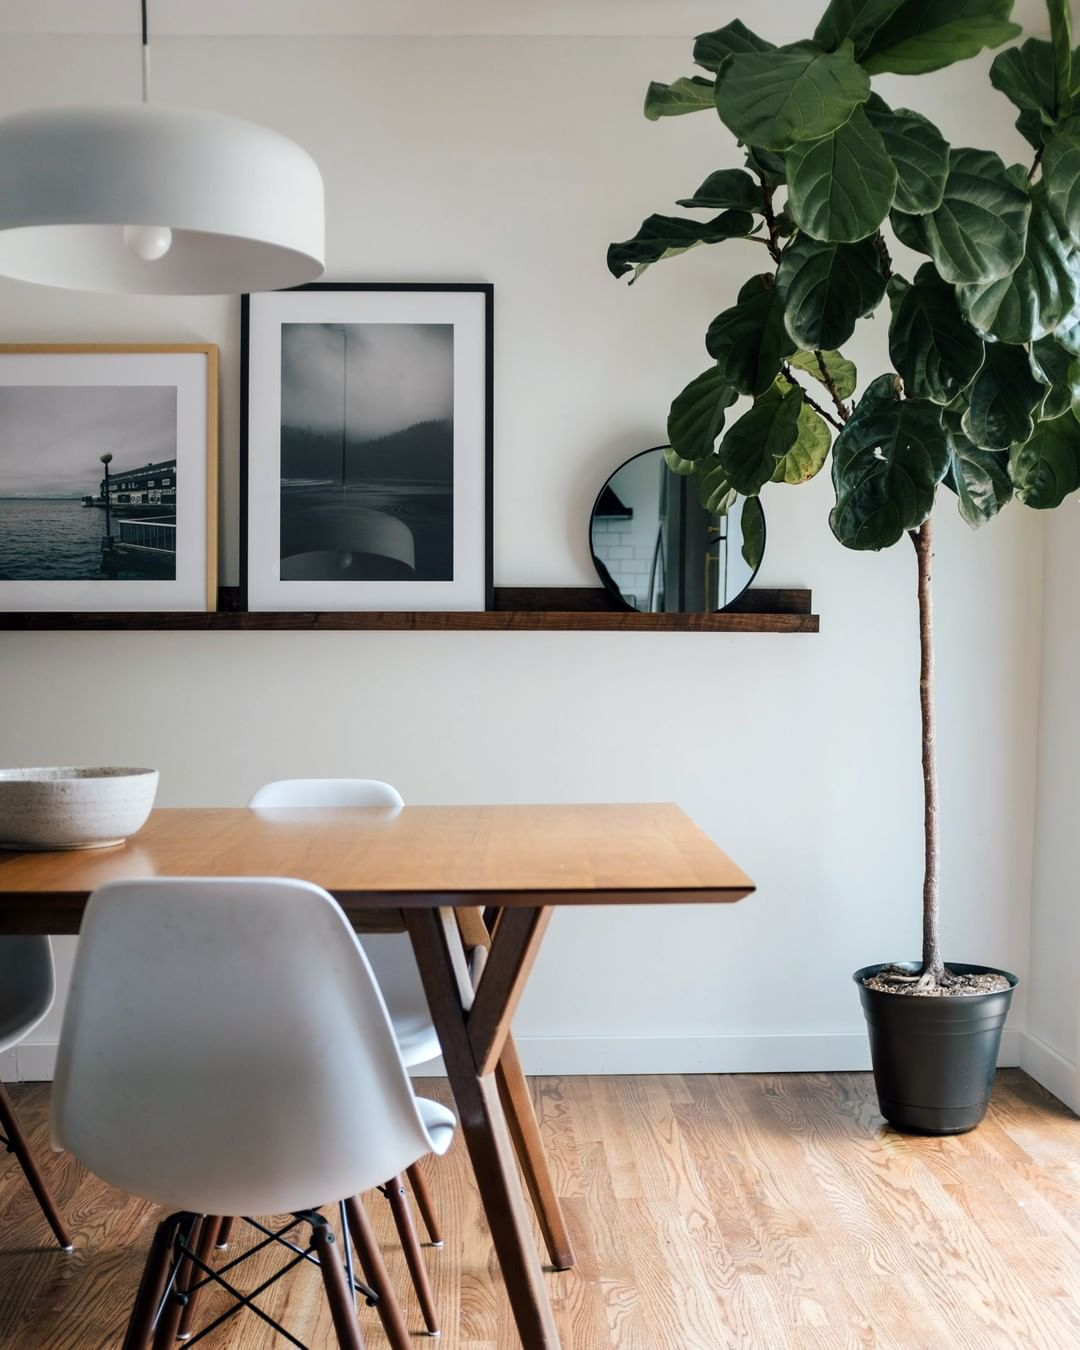 From warm whites to moody blues, these are the 2020 paint colors that will be everywhere. Upgrade your space with these popular interior paint colors for 2020!